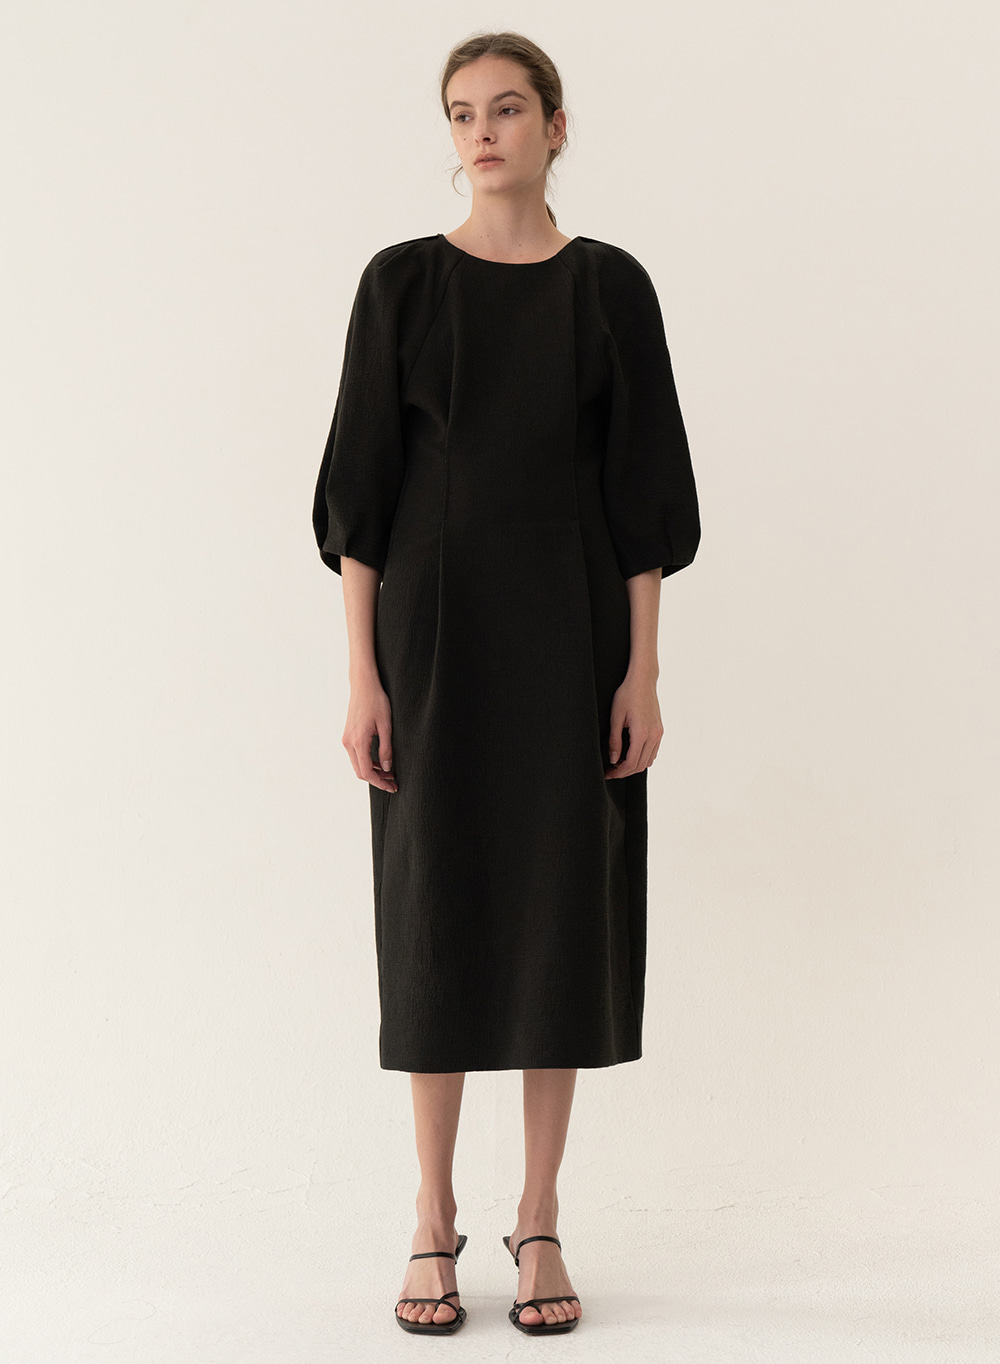 [ESSENTIAL] Cocoon Silhouette Dress Black